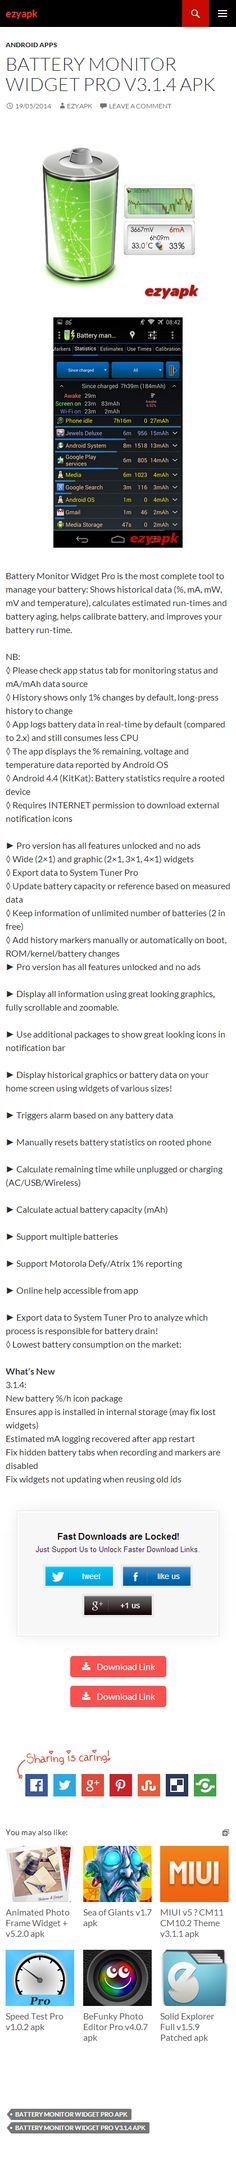 Android Apps Battery Monitor Widget Pro v3.1.4 apk - ezyapk Battery Monitor Widget Pro is the most complete tool to manage your battery: Shows historical data, calculates estimated run-times and battery aging. http://www.ezyapk.com/android-apps/battery-monitor-widget-pro-v3-1-4-apk/